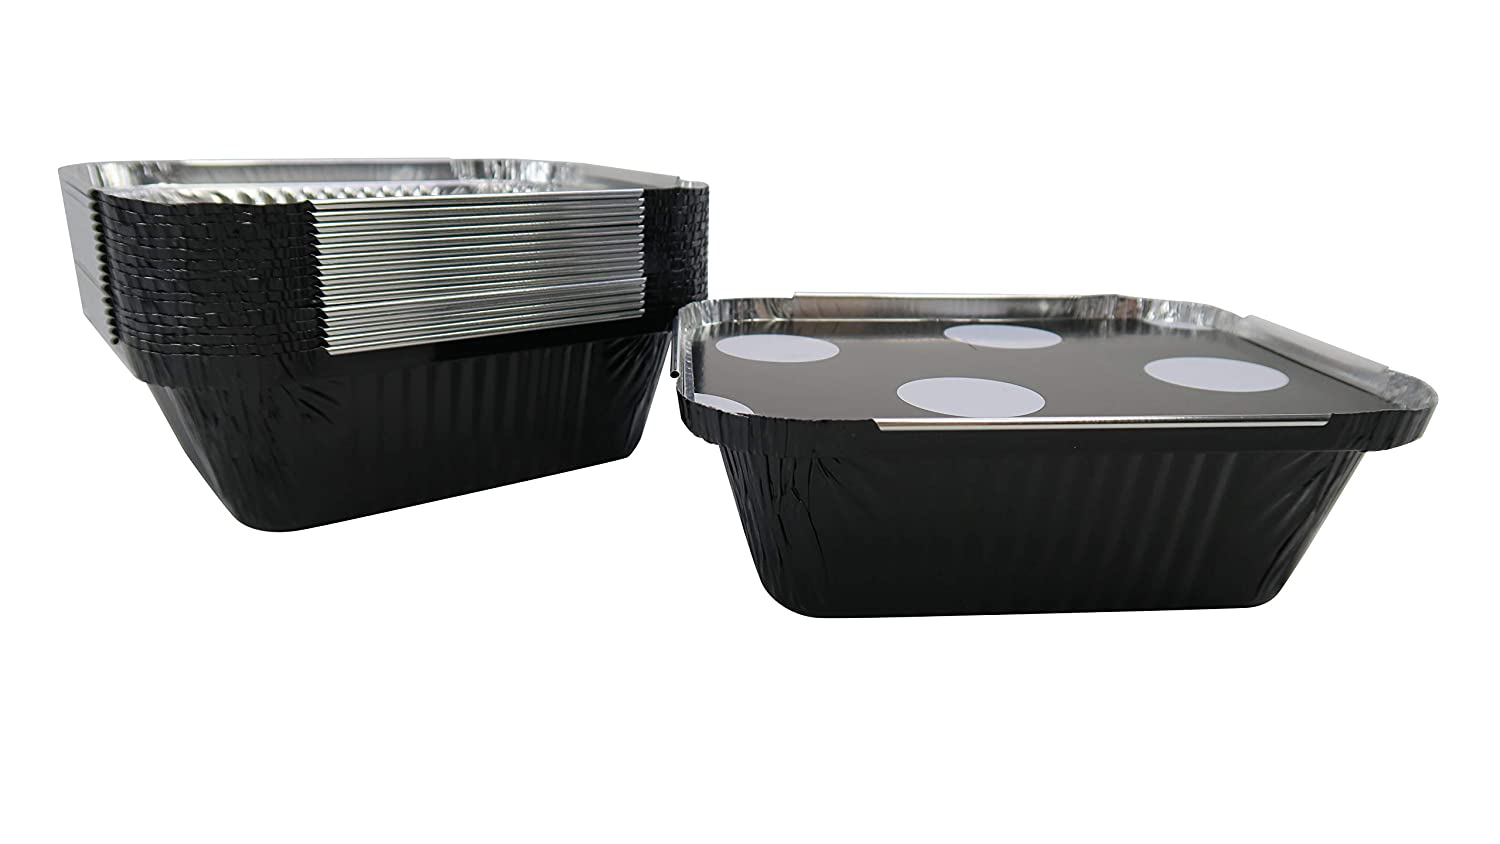 KitchenDance Disposable Black 大幅値下げランキング セール特価品 Aluminum Take Board with Out Trays